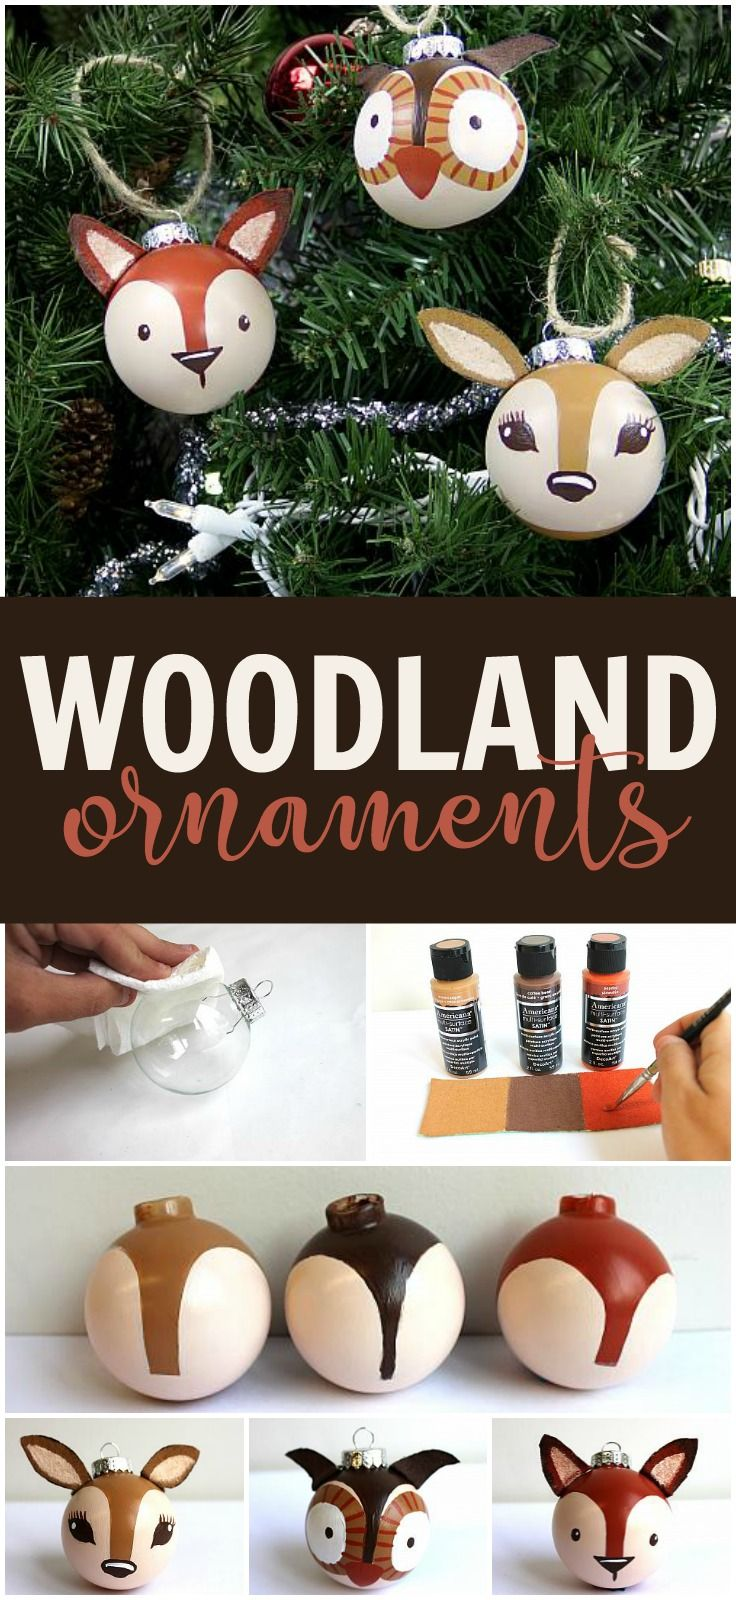 Turn a plain round ornament into a cute woodland creature easily with Americana® Multi-Surface Acrylics. @DecoArt #decoartprojects #decoartprojects